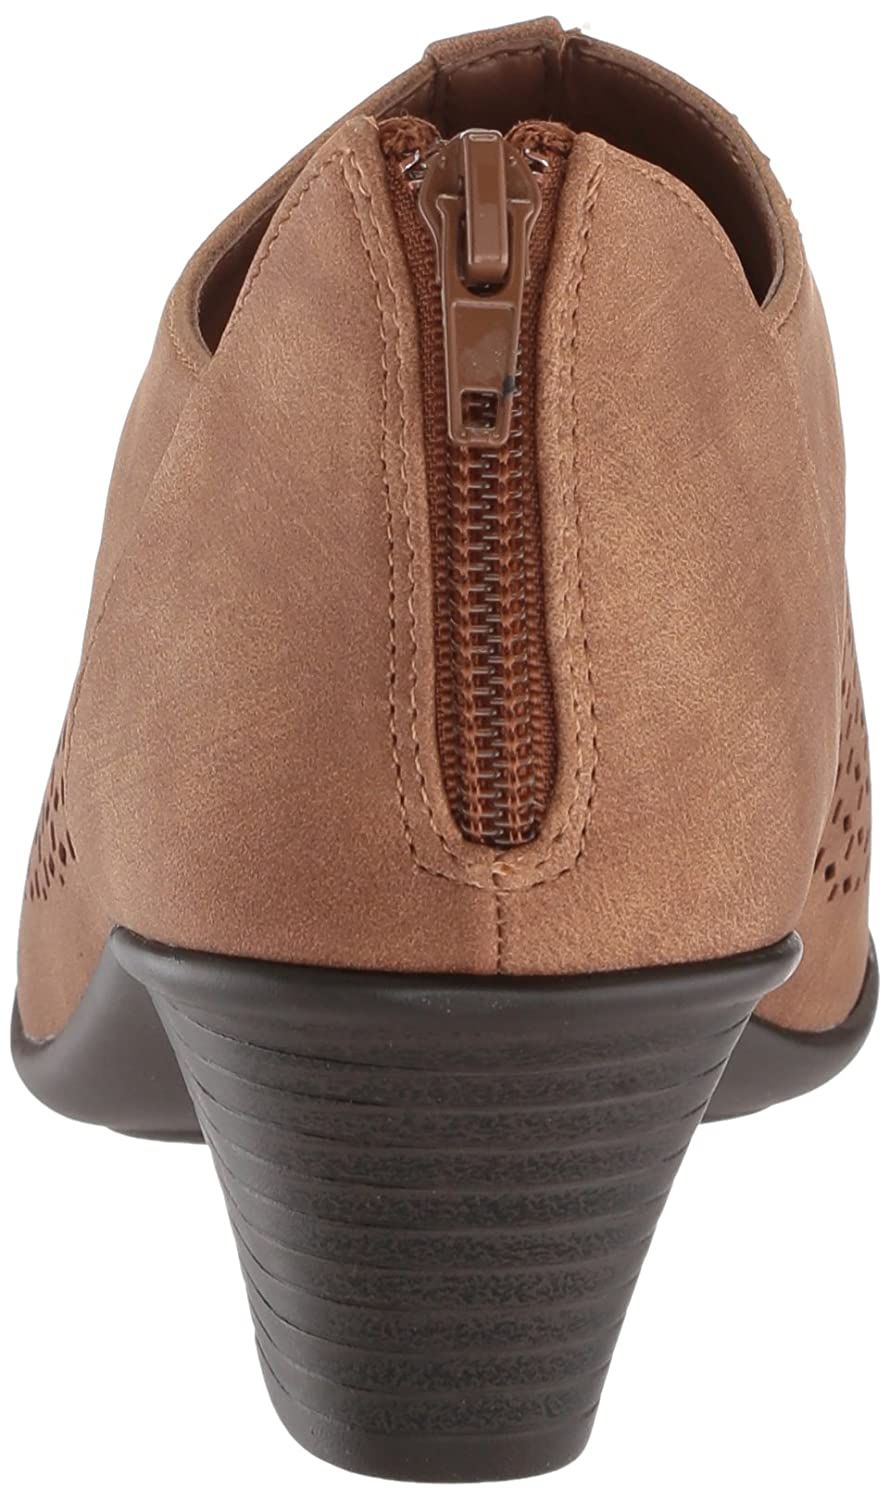 Easy Street Womens Steff Casual Booties Shoes,